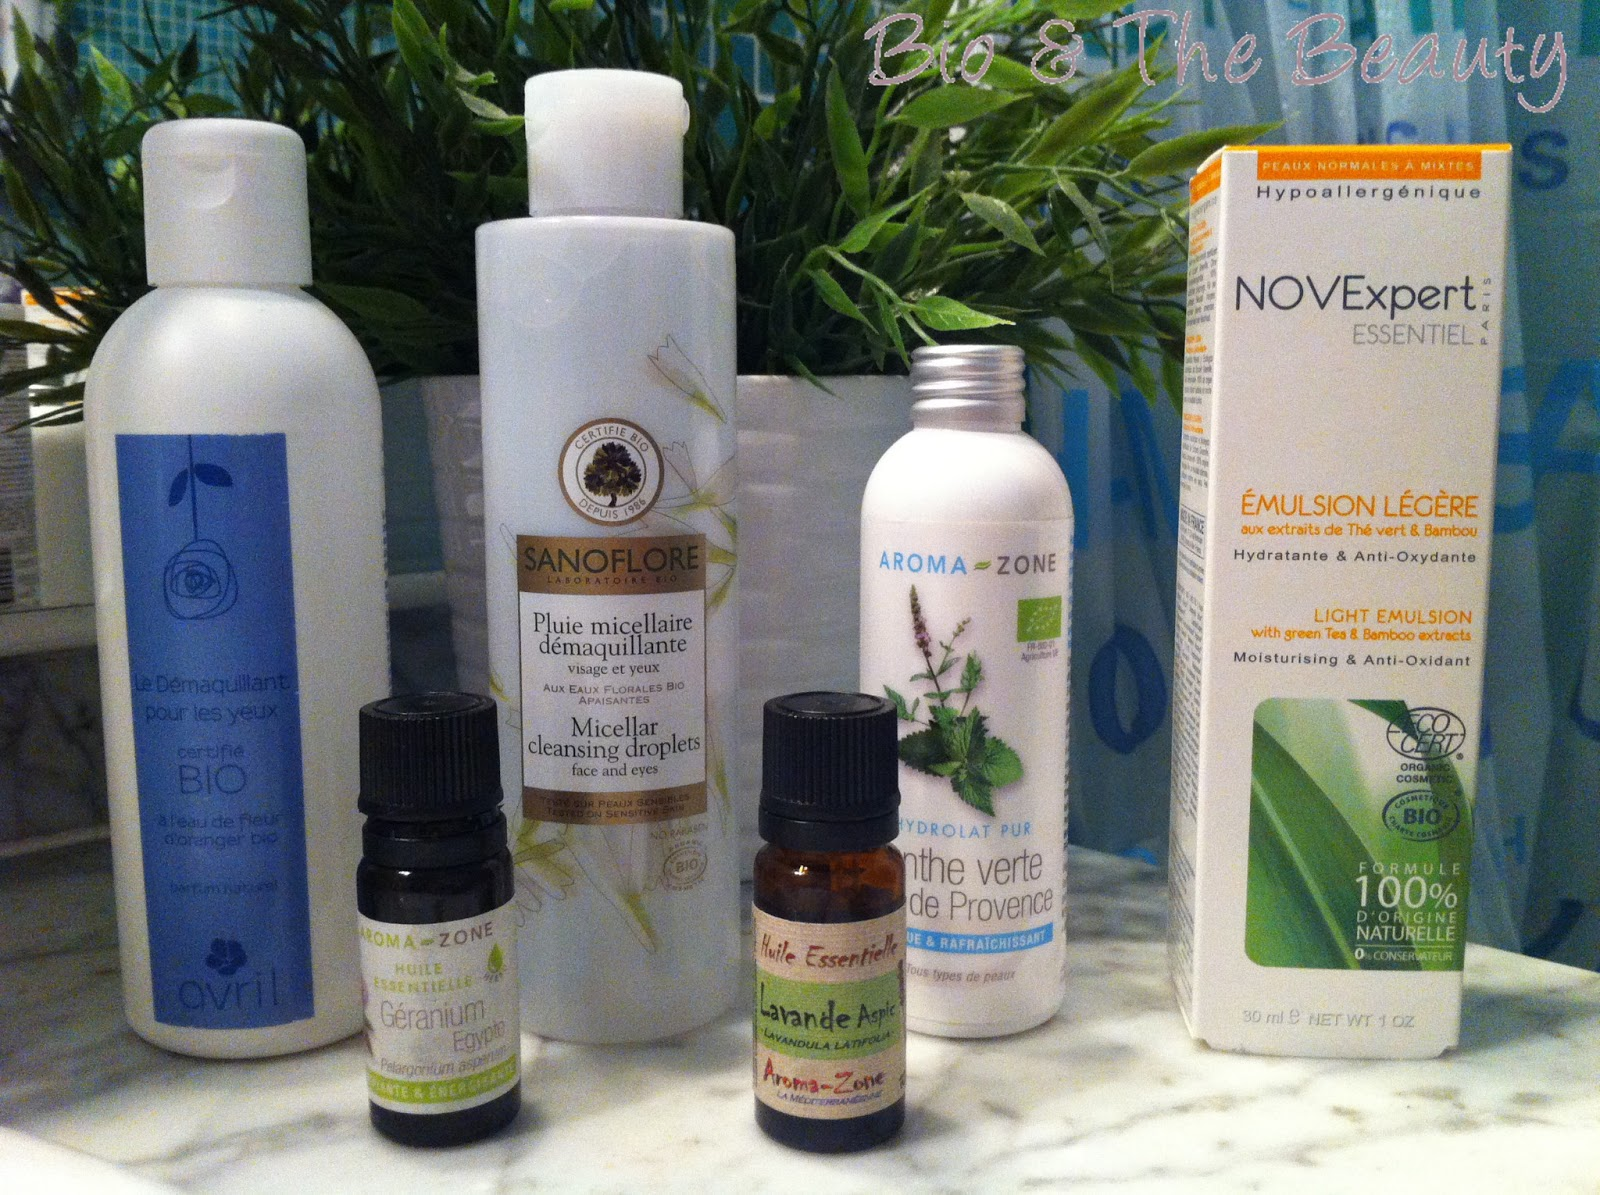 MA ROUTINE VISAGE DE PRINTEMPS : AVRIL BEAUTE, SANOFOLORE, NOVEXPERT, AROMA-ZONE …